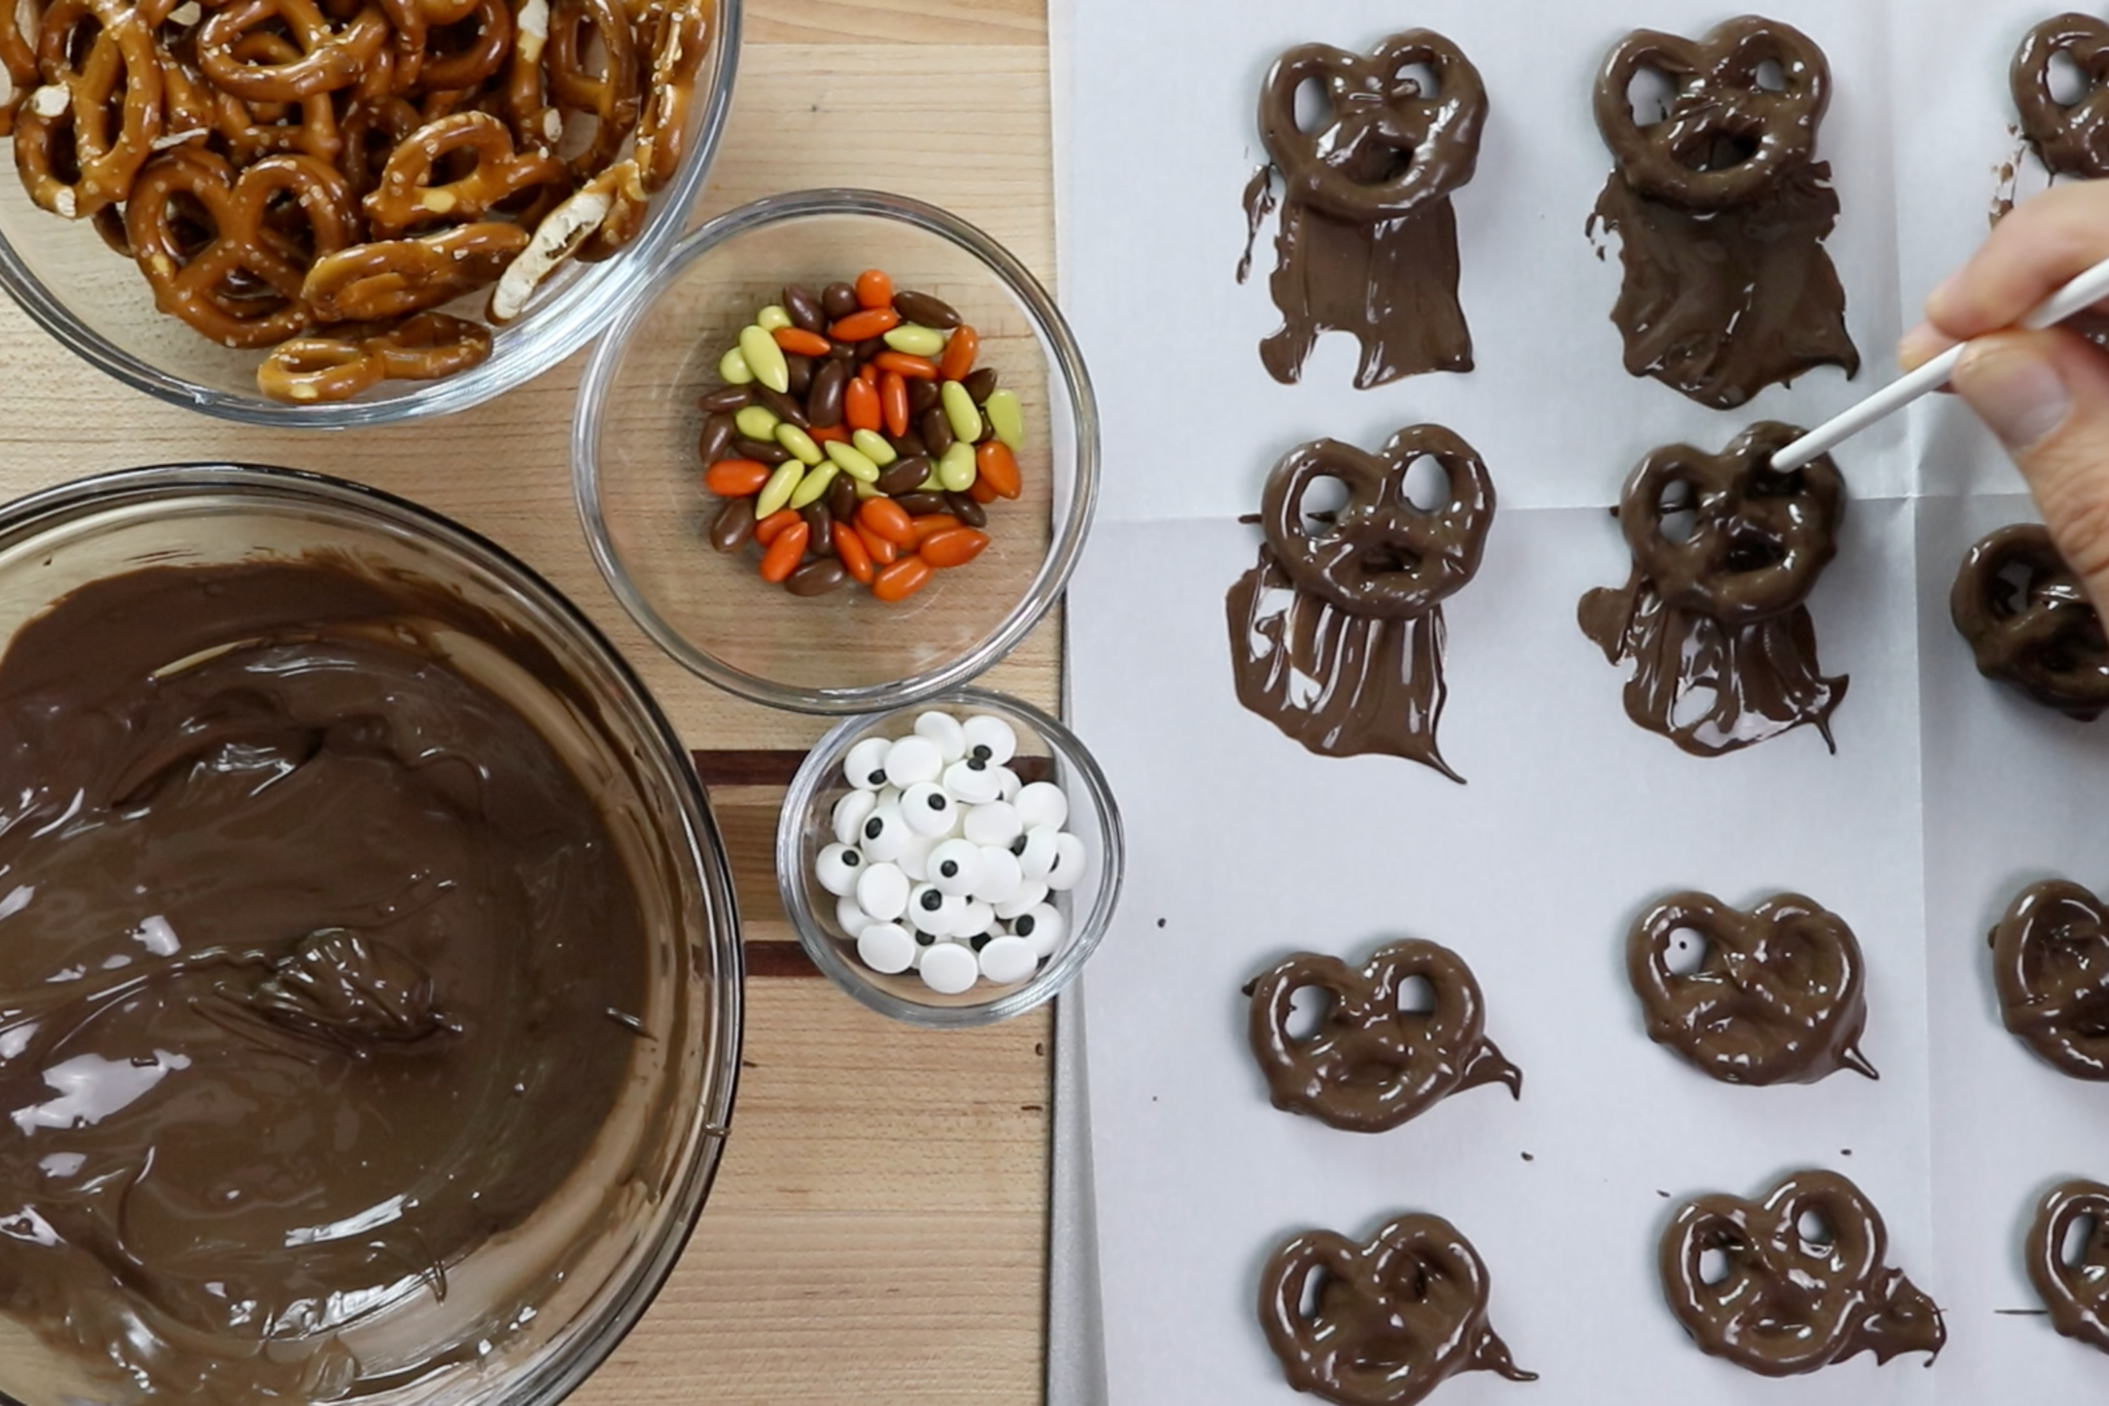 5. Gently move the pretzels up on the baking sheet to remove excess coating. -